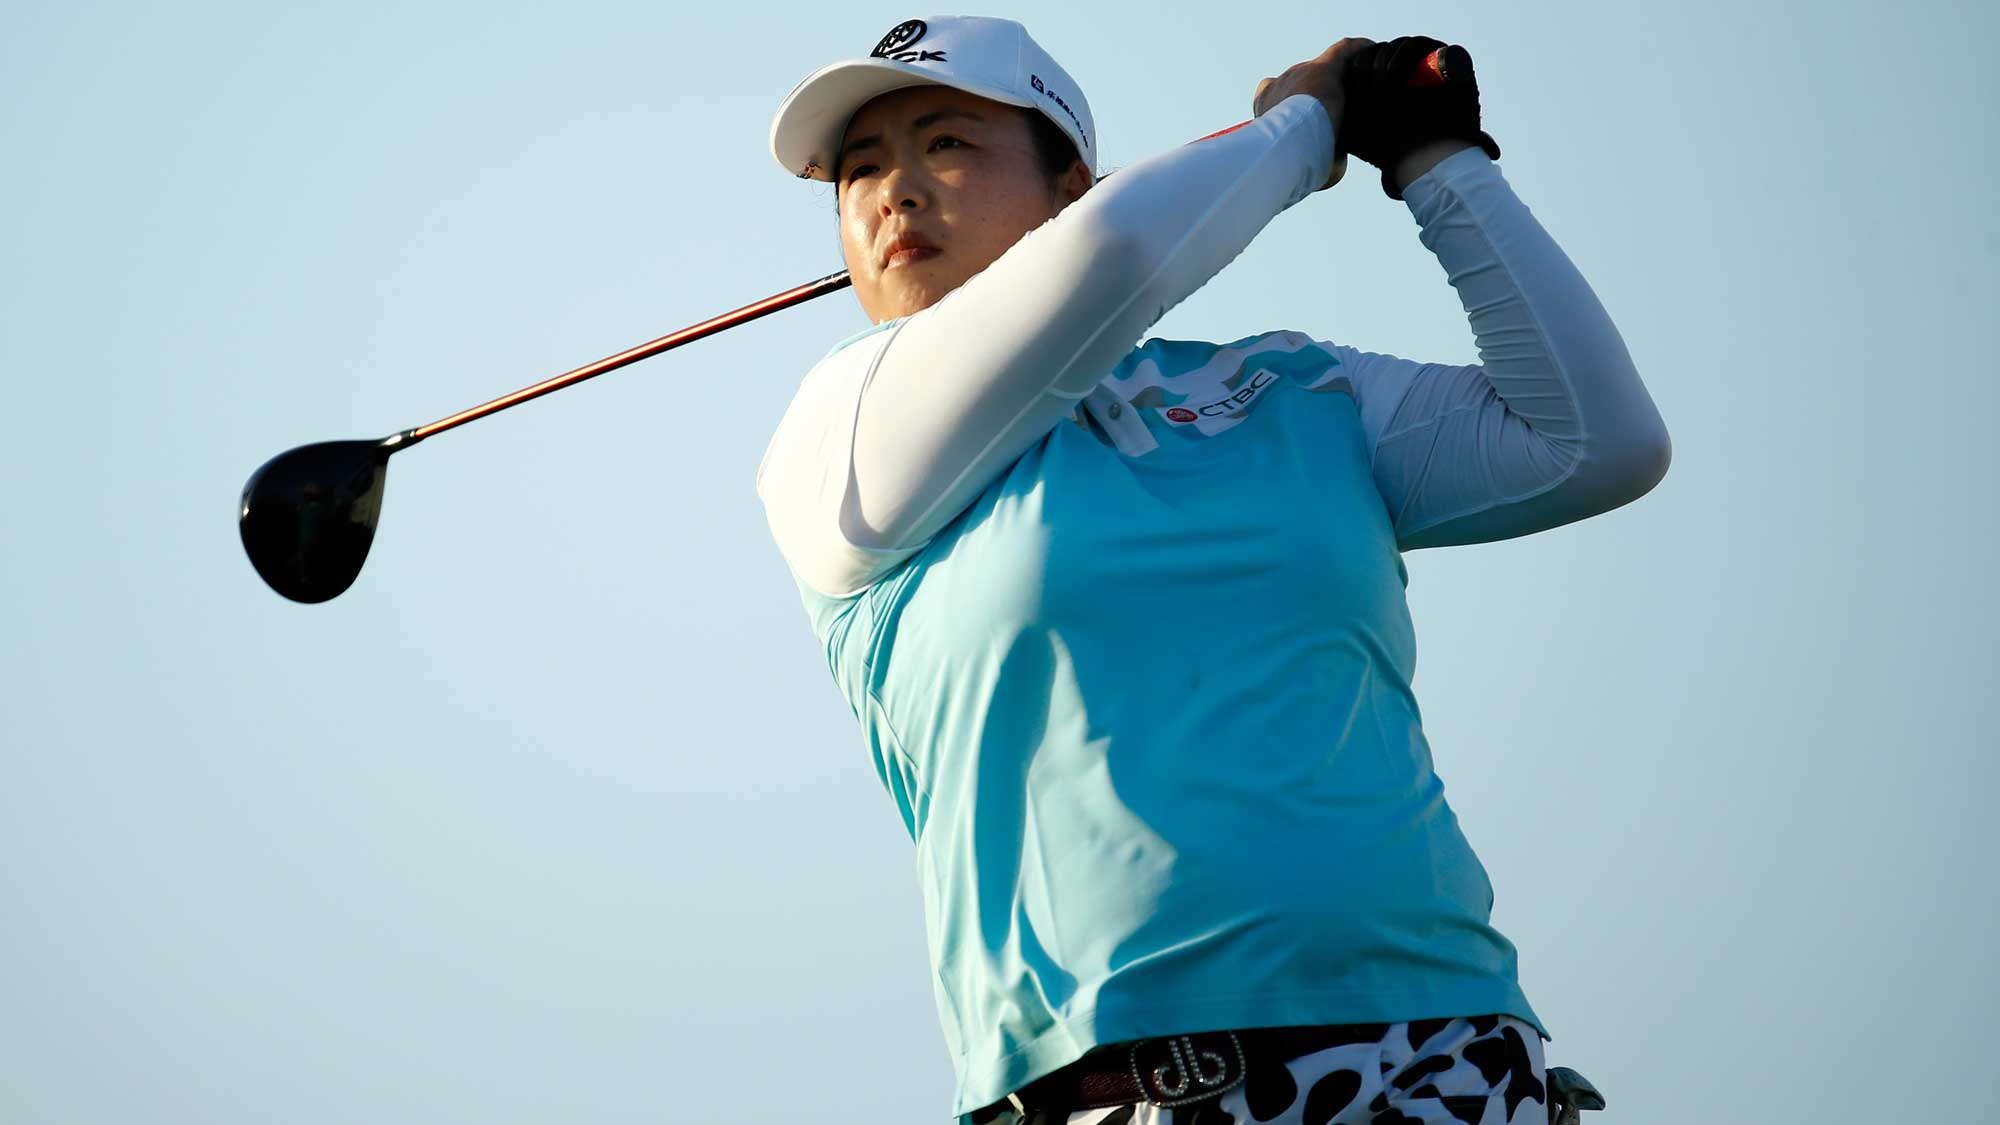 Shanshan Feng of China hits her tee shot on the 16th hole during the second round of the Pure Silk Bahamas LPGA Classic